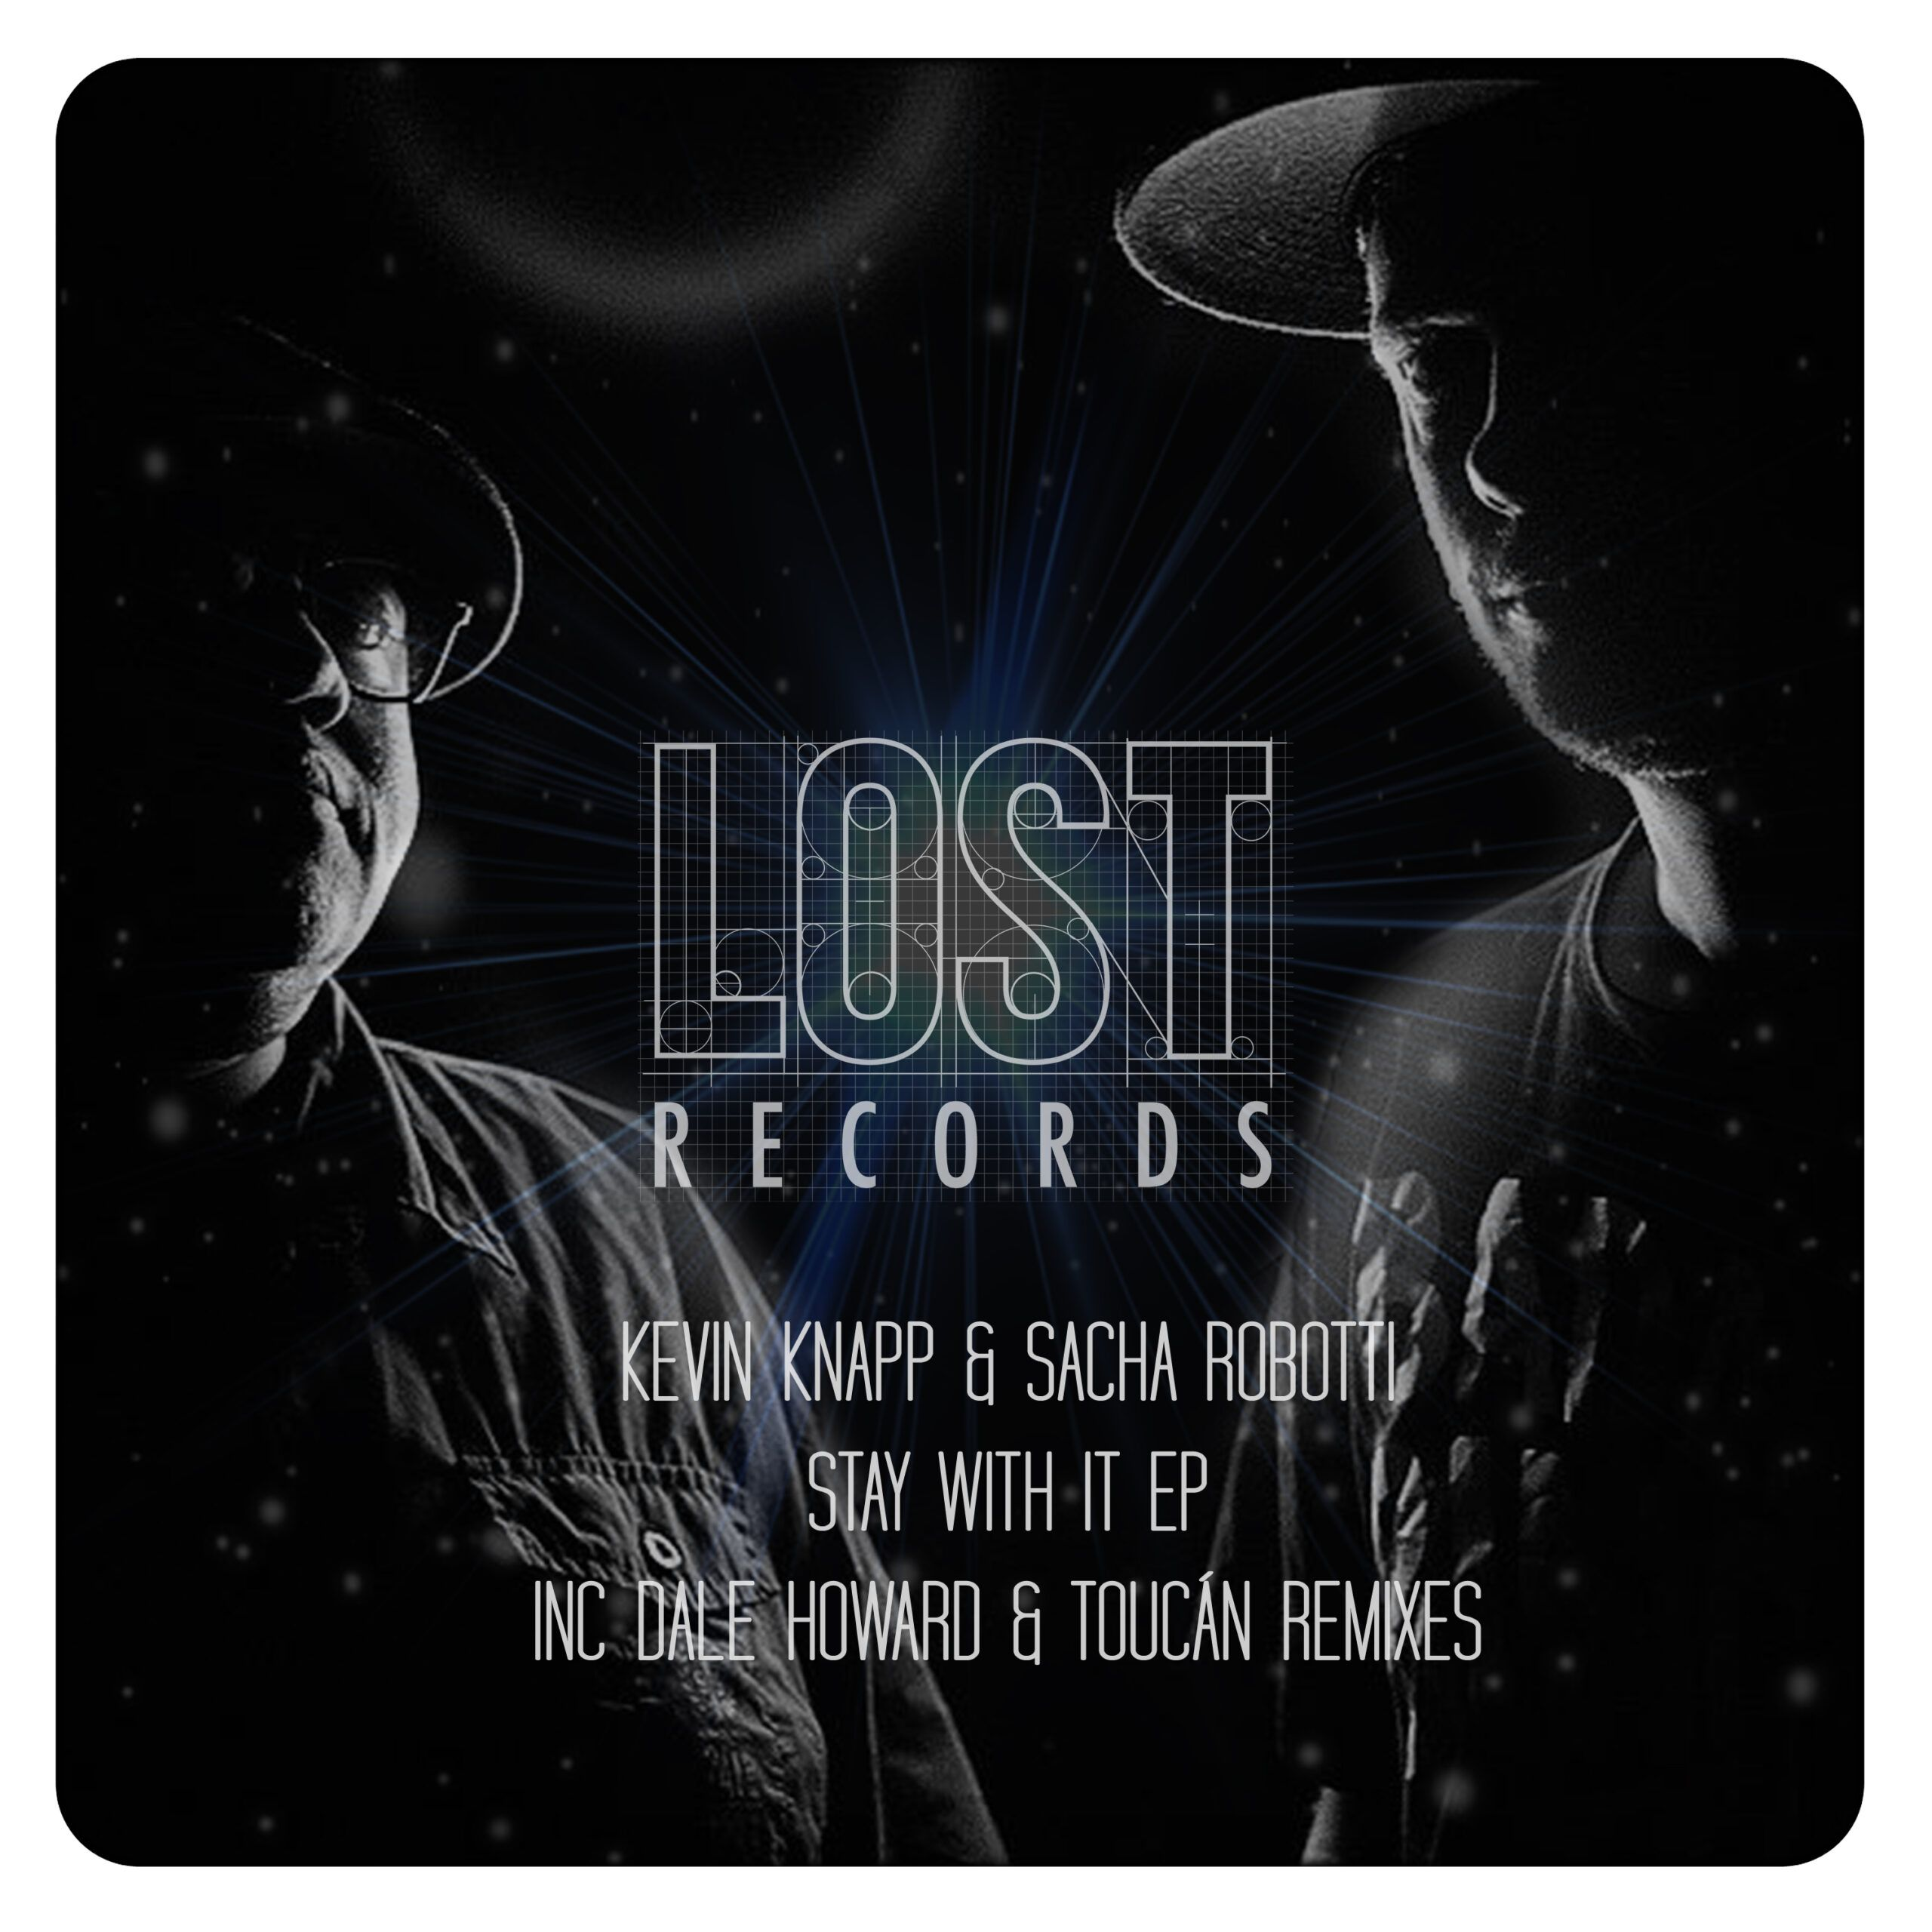 pack_shot_kevin_knapp_sacha_robotti_-_stay_with_it_ep_-_lost_records.jpg